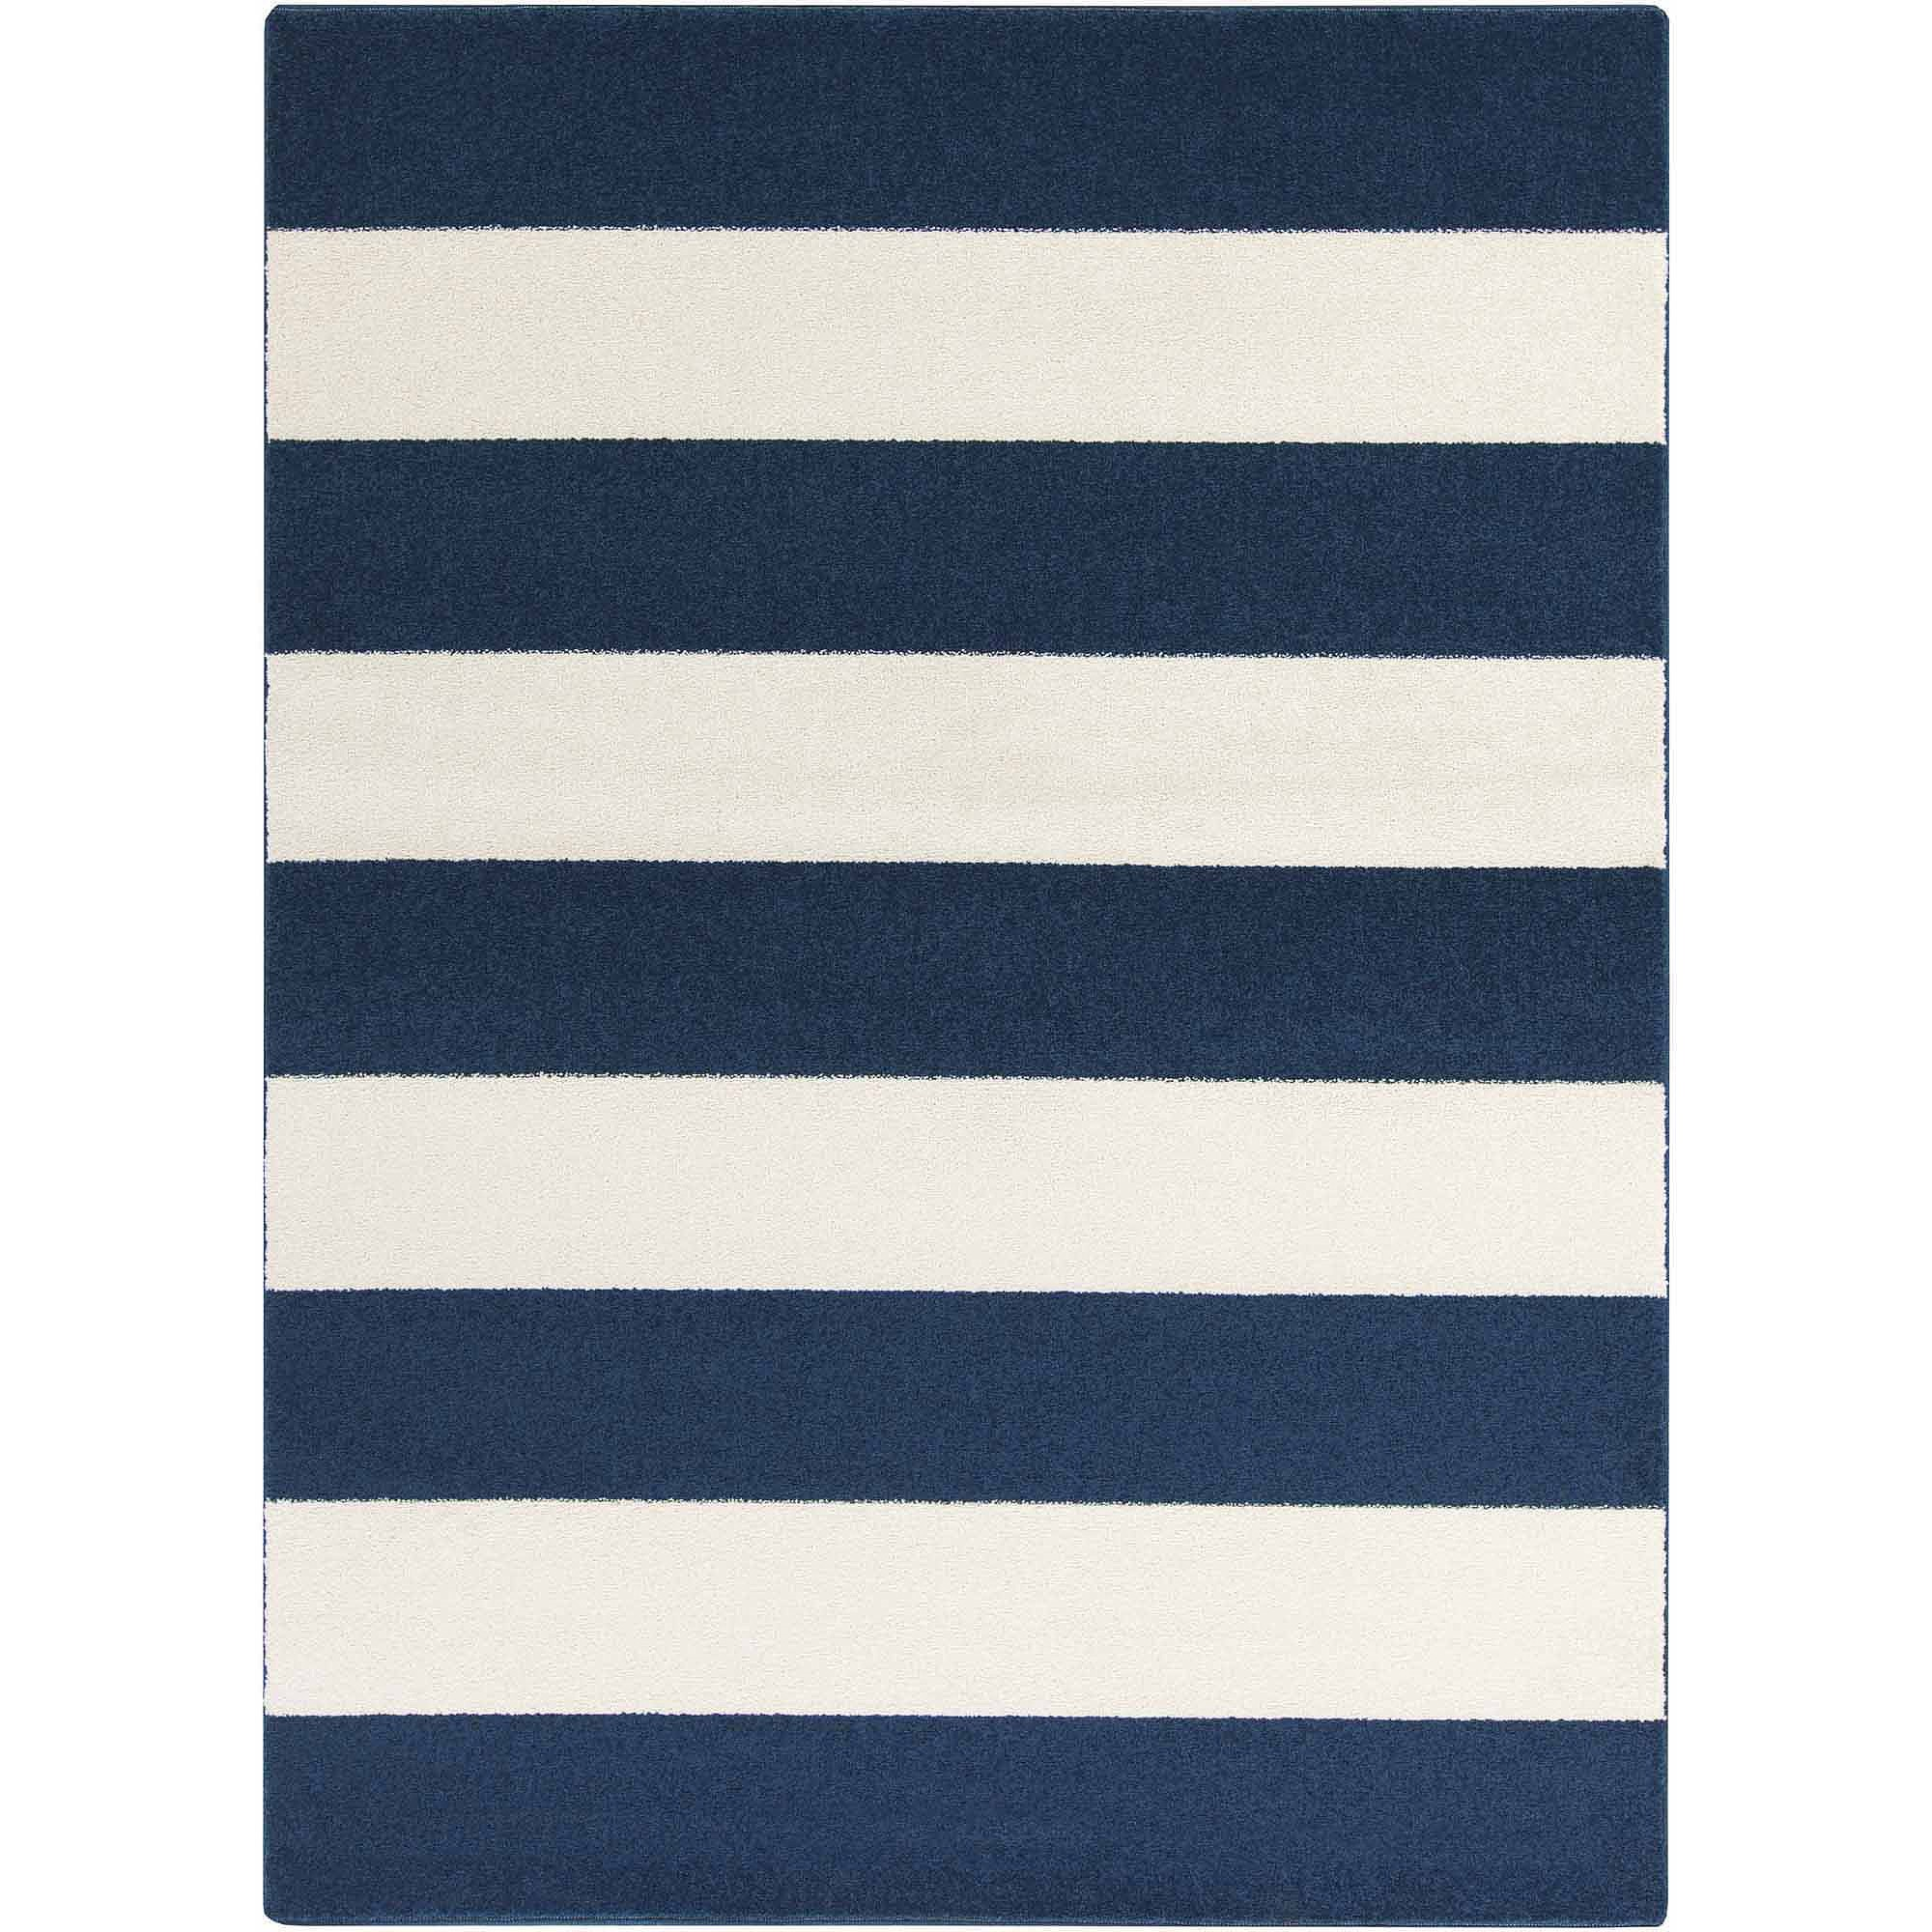 apartment AH Napa Machine Made Geometric Area Rug, Cobalt